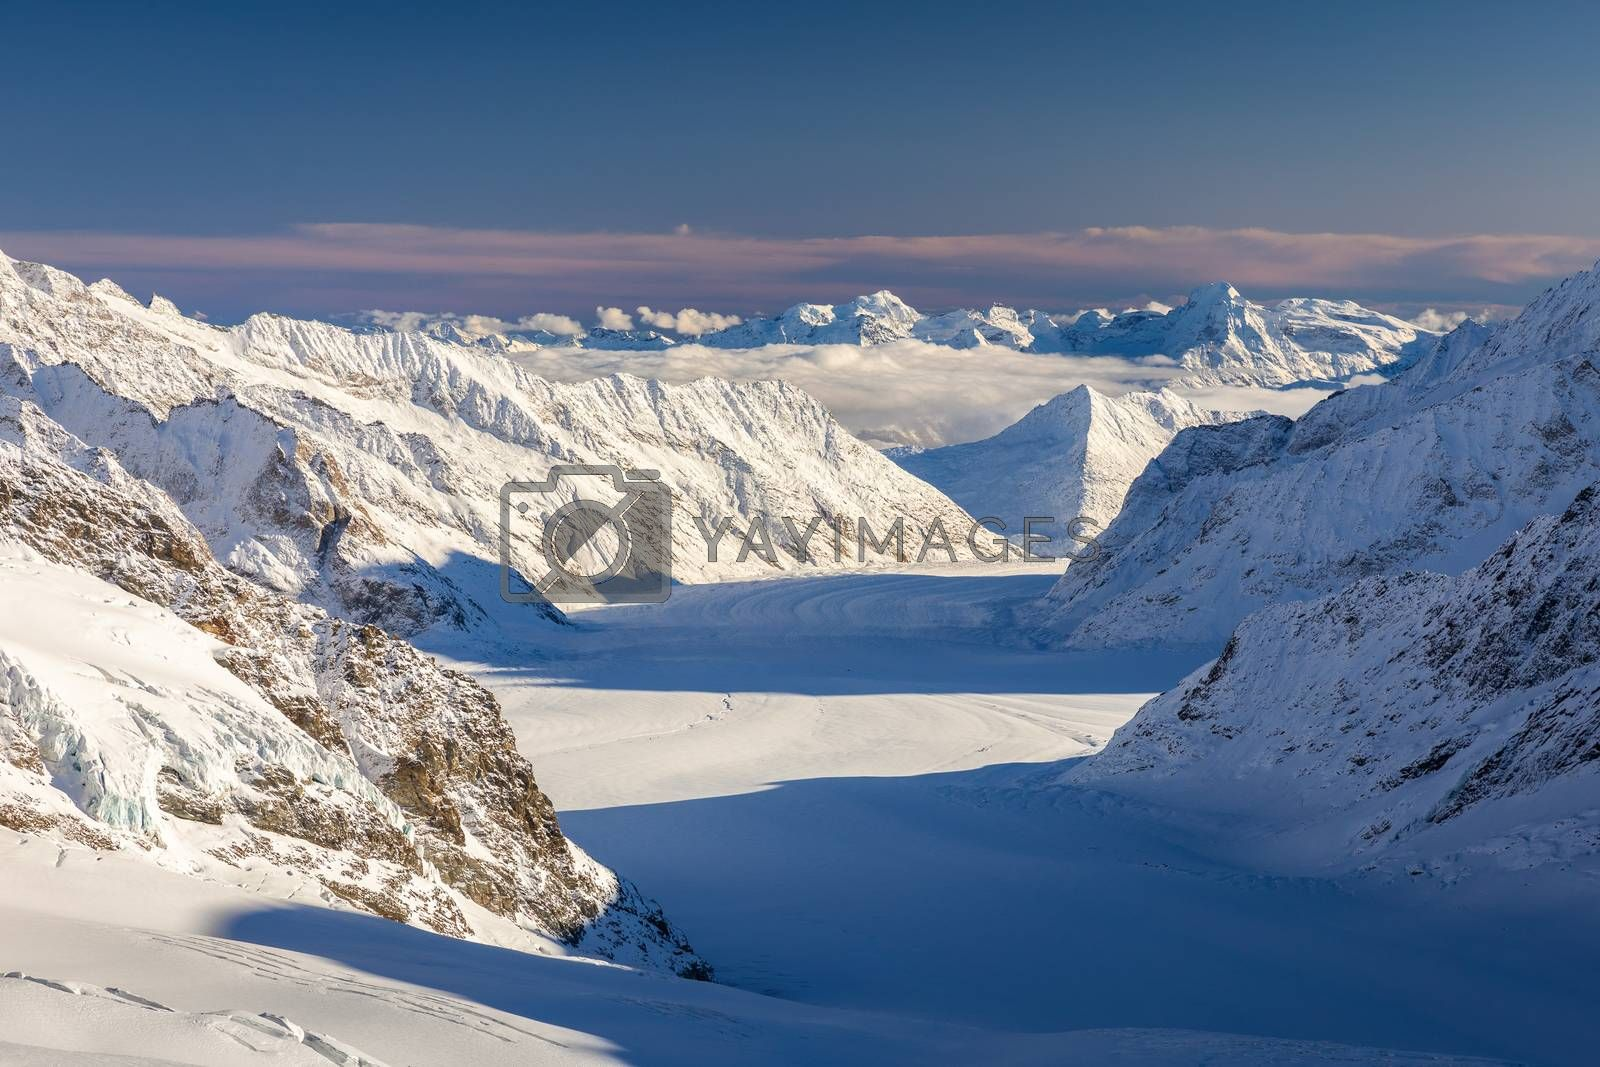 Aerial of snowcapped mountain range of Jungfrau in winter before sunset, view from Jungfraujoch in middle of Jungfrau and Monch, Interlaken, Switzerland.